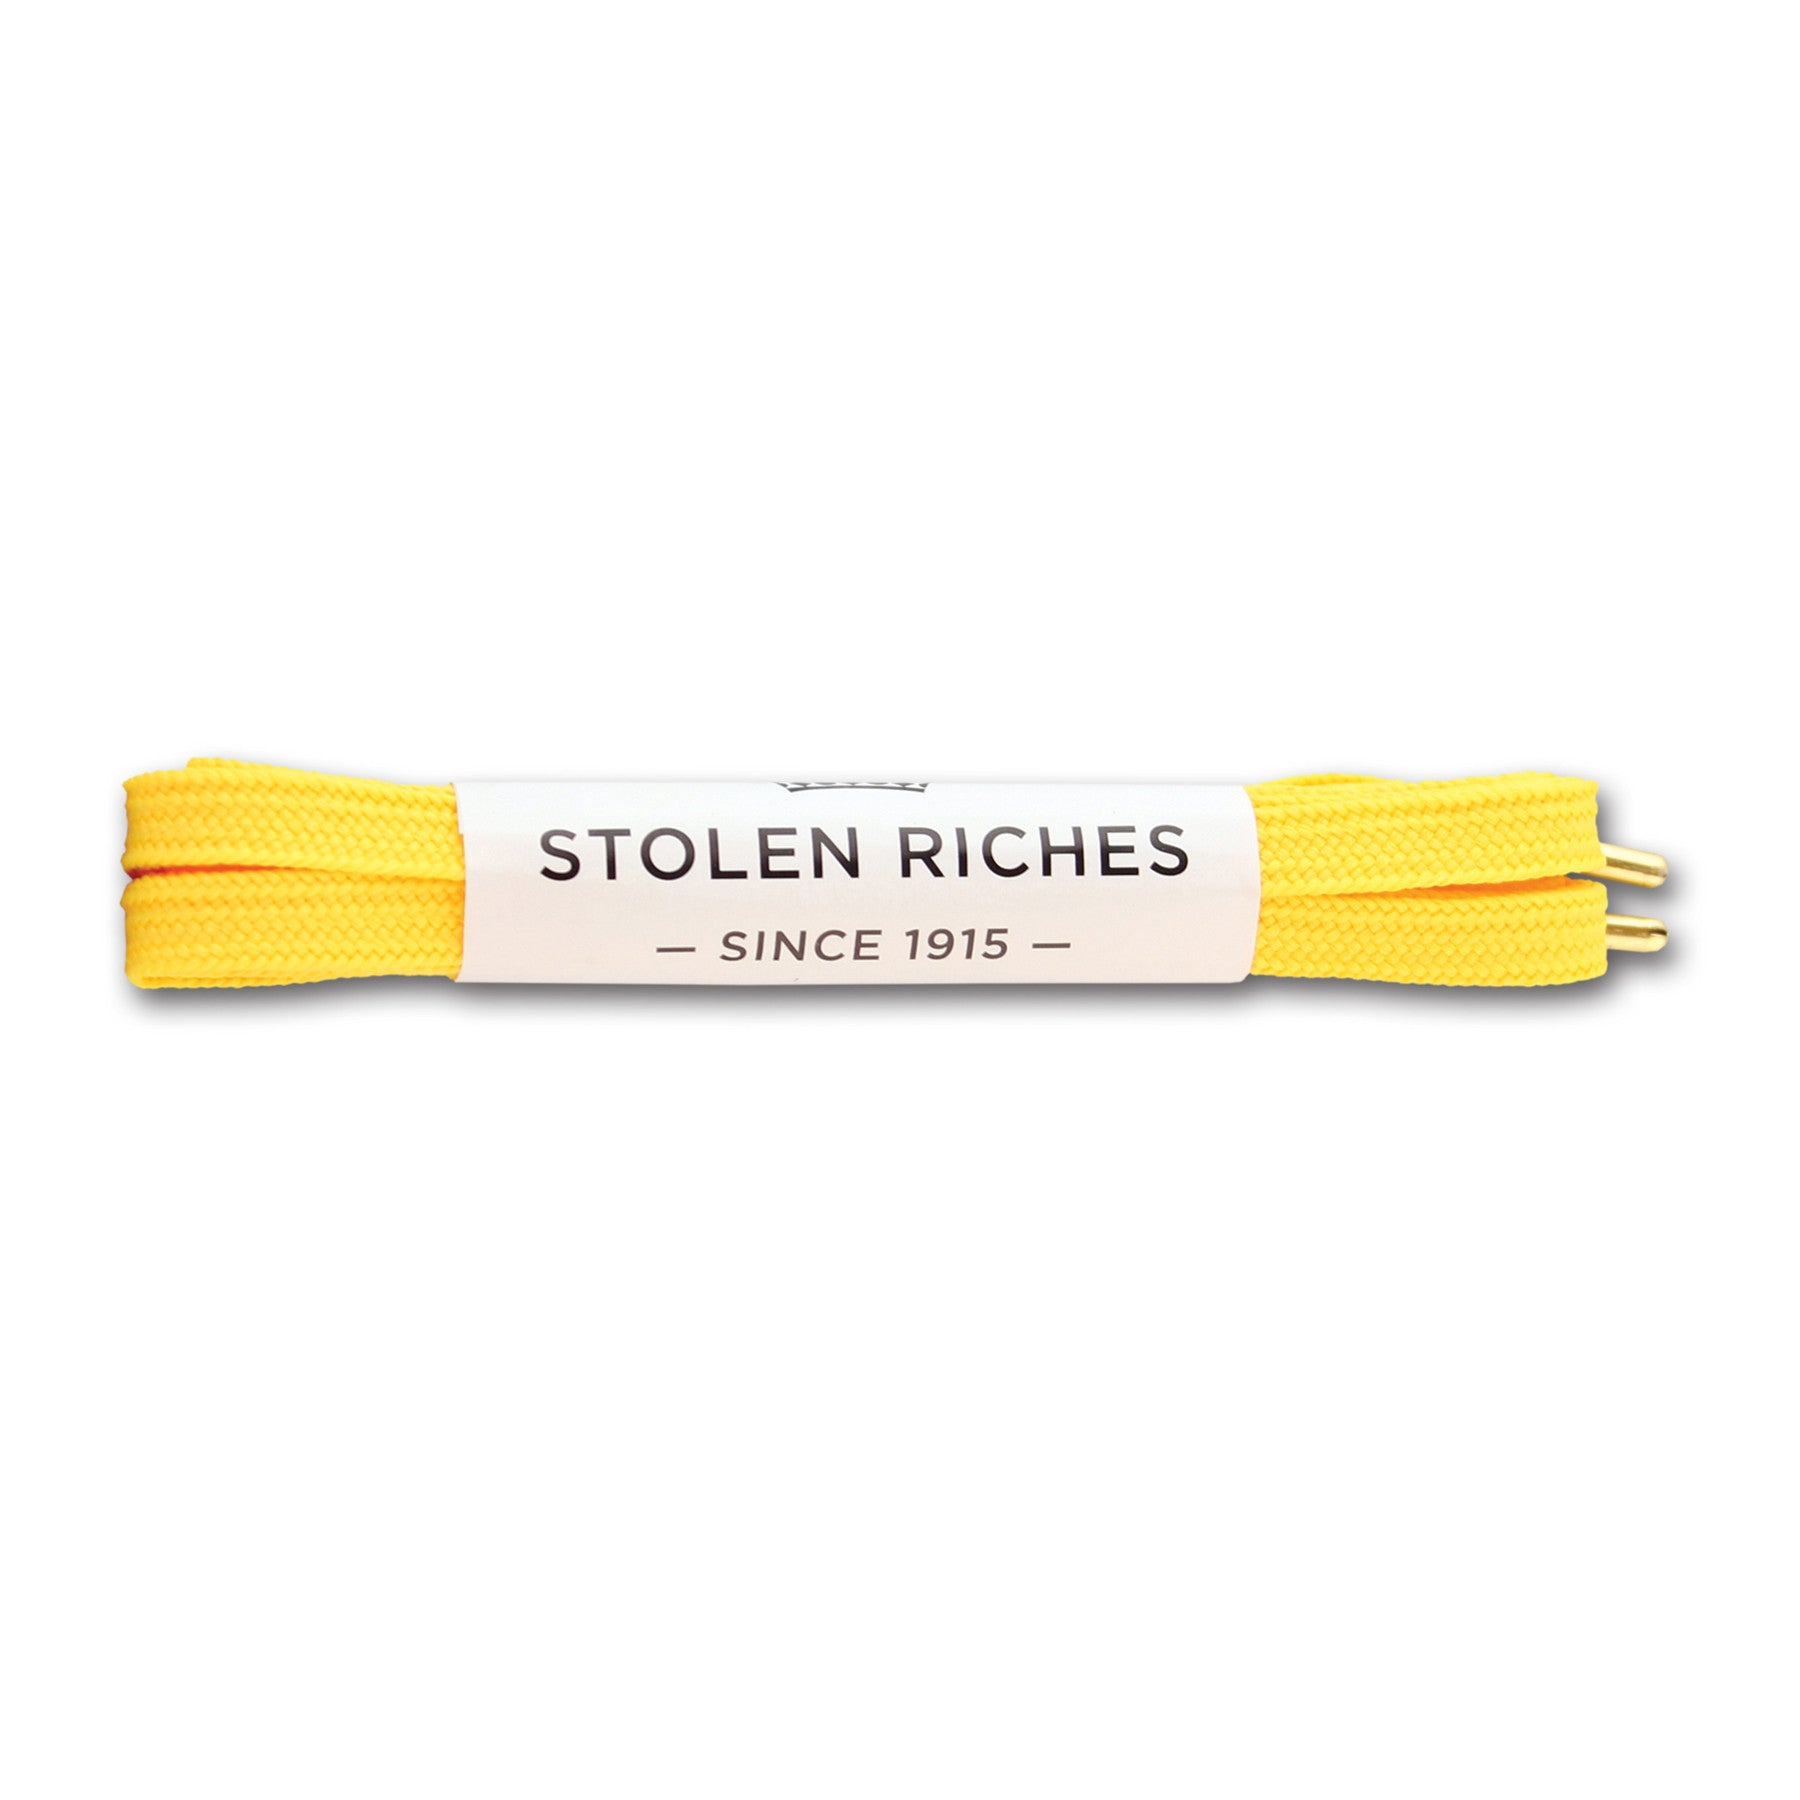 "Huckleberry Yellow (Length: 45""/114cm) - Stolen Riches / CA"